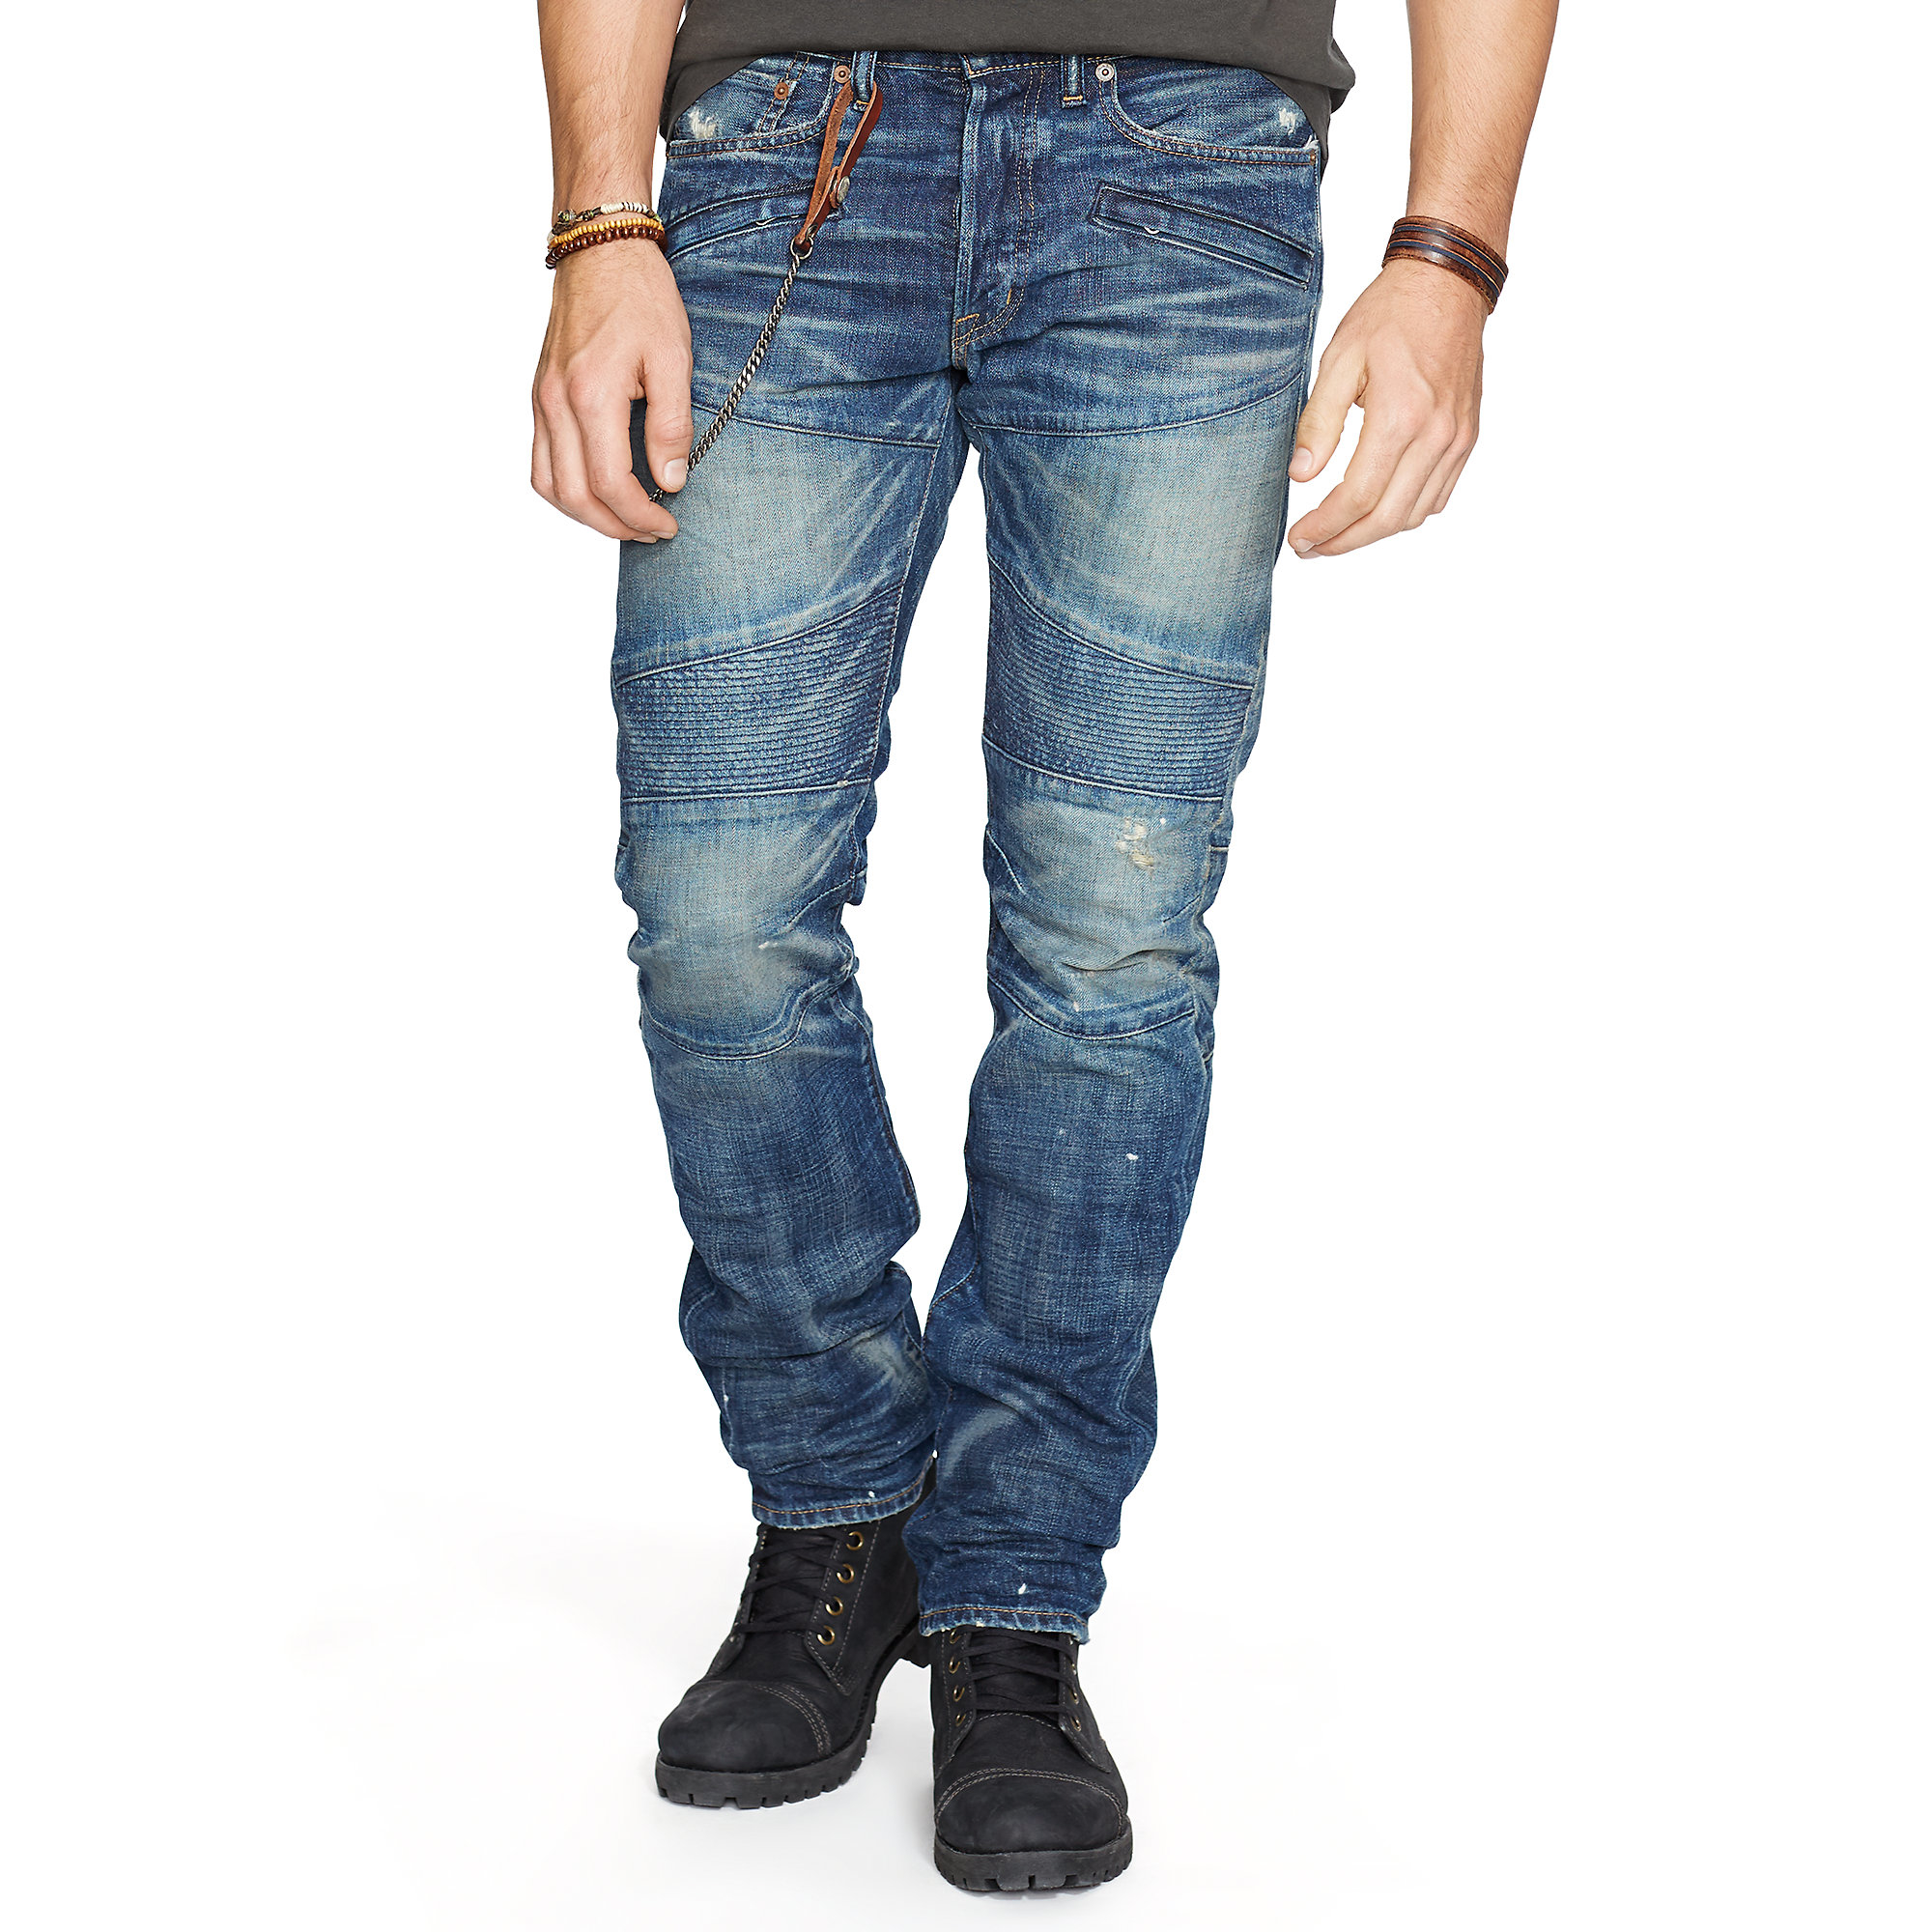 denim supply ralph lauren alamo slim fit moto jean in blue for men lyst. Black Bedroom Furniture Sets. Home Design Ideas